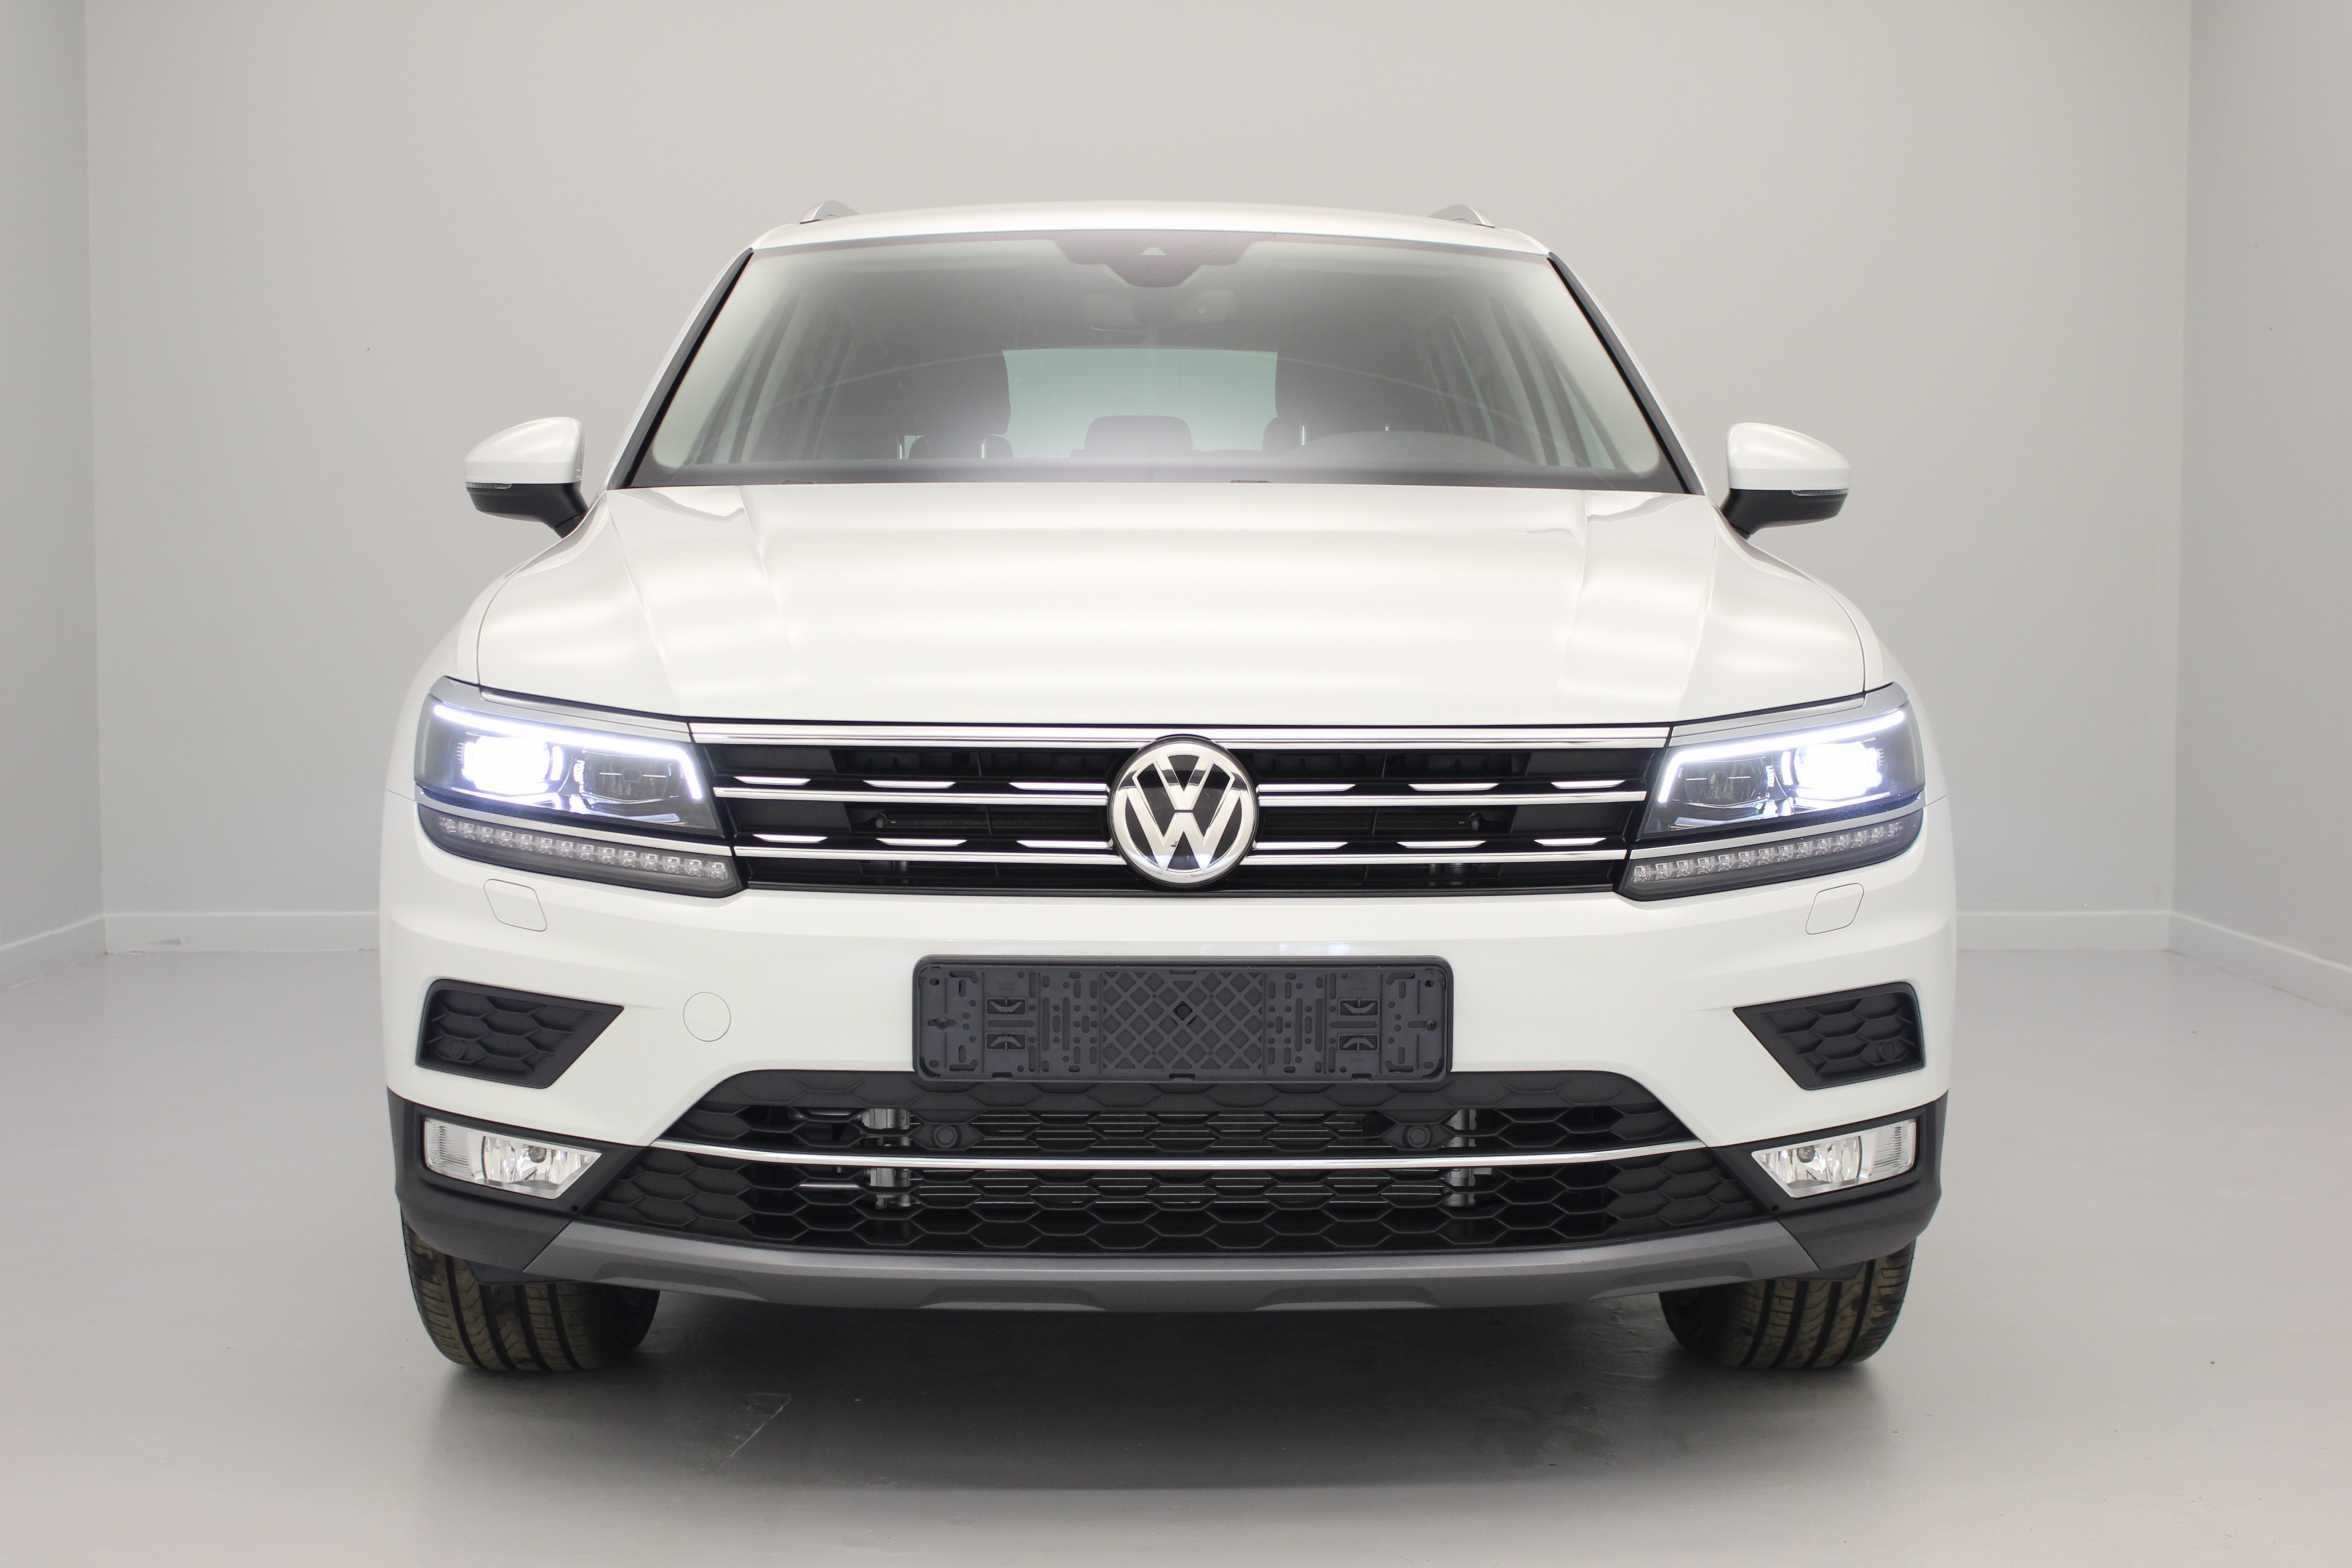 photos de volkswagen nouveau tiguan 2 0 tdi 150 bmt dsg7 4motion confortline blanc pur jantes. Black Bedroom Furniture Sets. Home Design Ideas